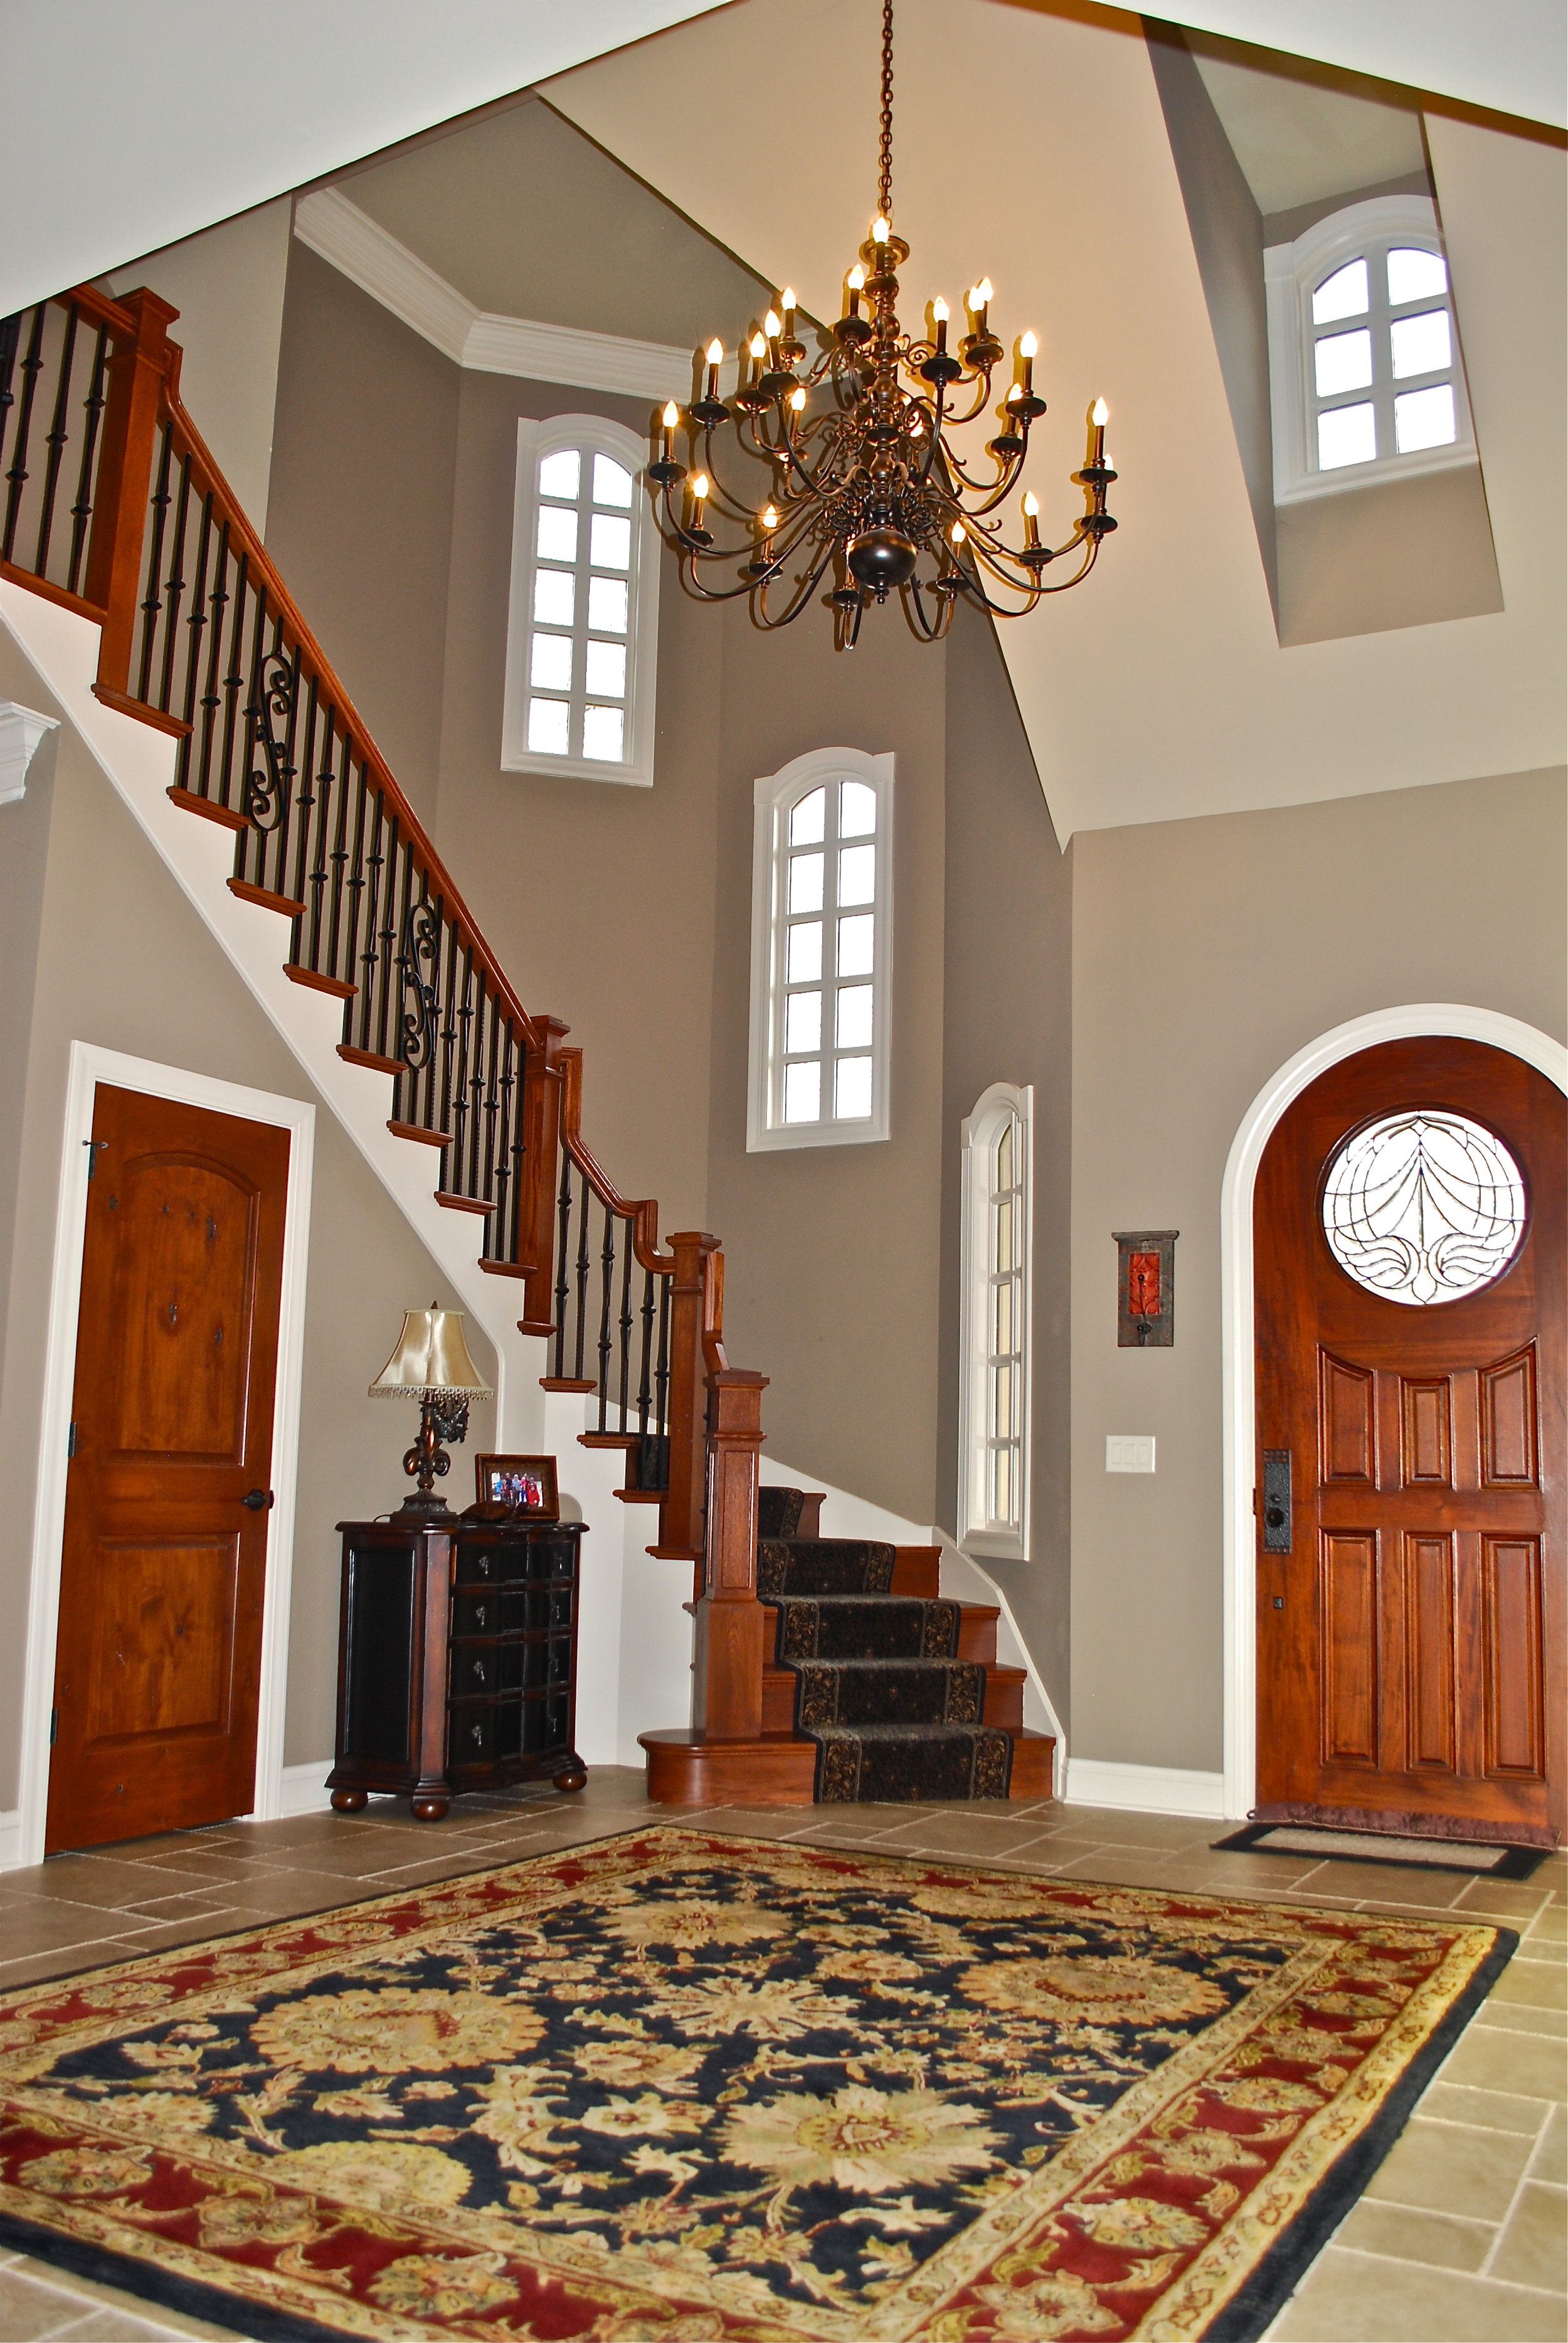 The Foyer Chandelier was Painted Oil Rubbed Bronze to Save Money. It Was Solid Bronze$$$